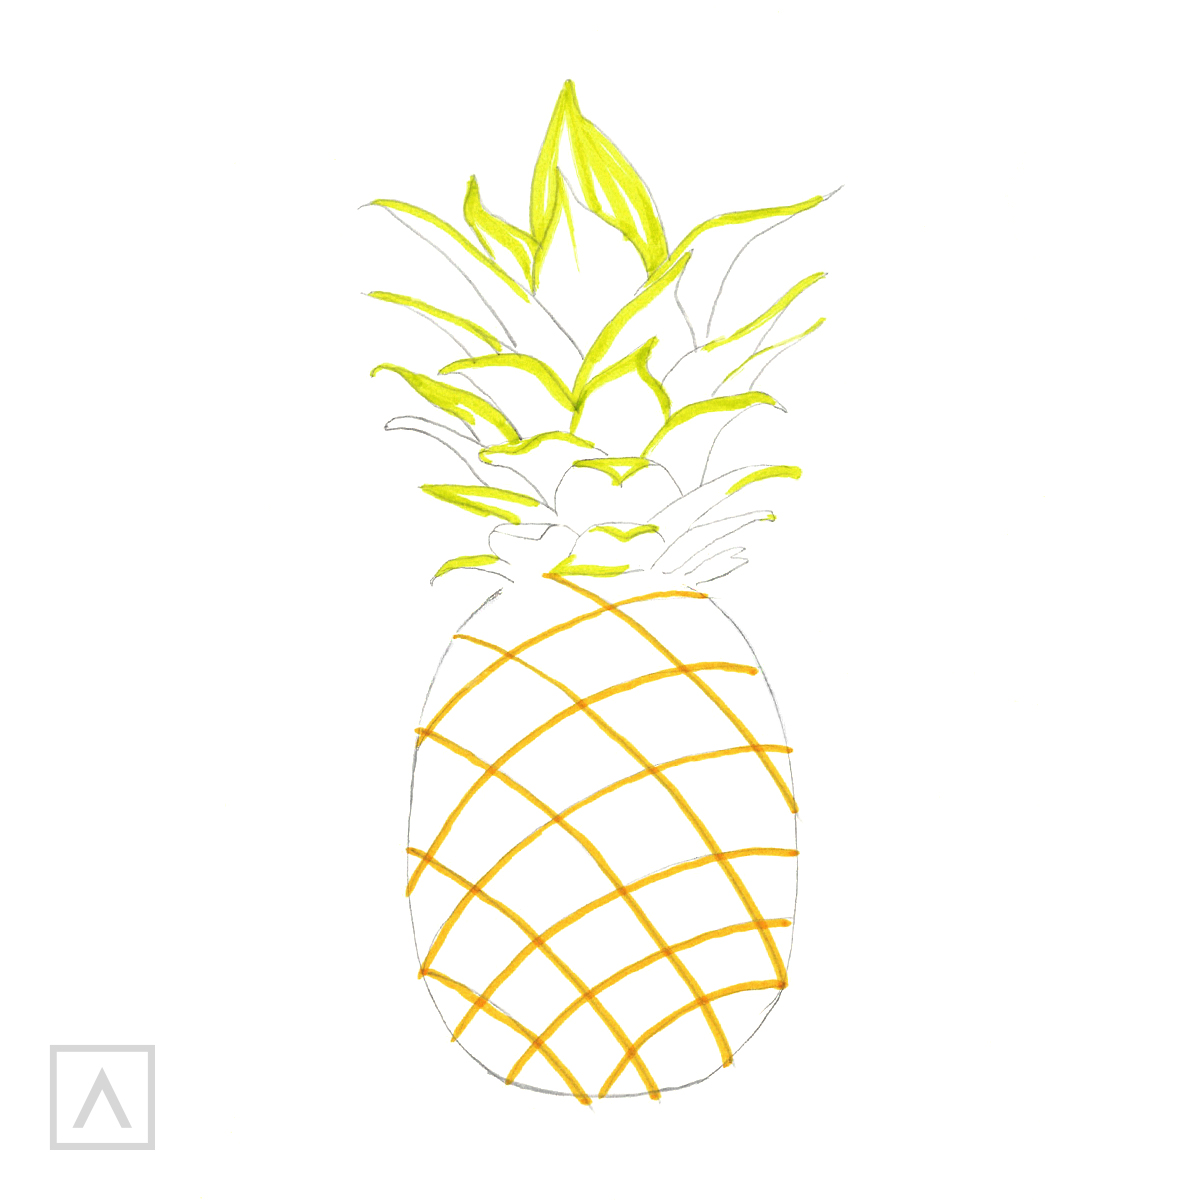 Pineapple drawing. Step 5